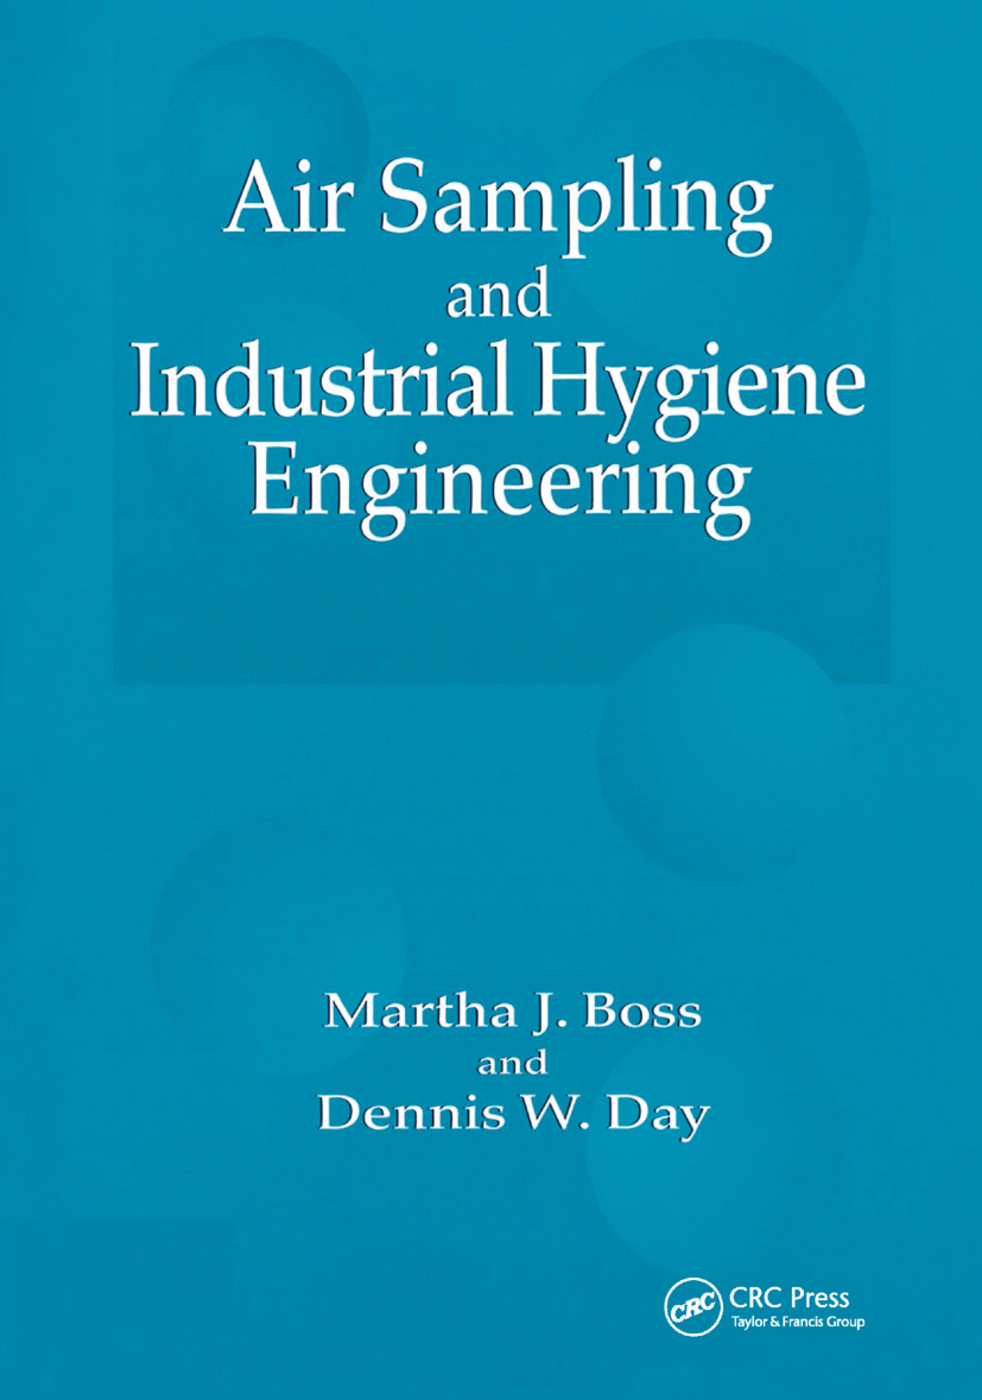 Air Sampling and Industrial Hygiene Engineering: 1st Edition (Paperback) book cover